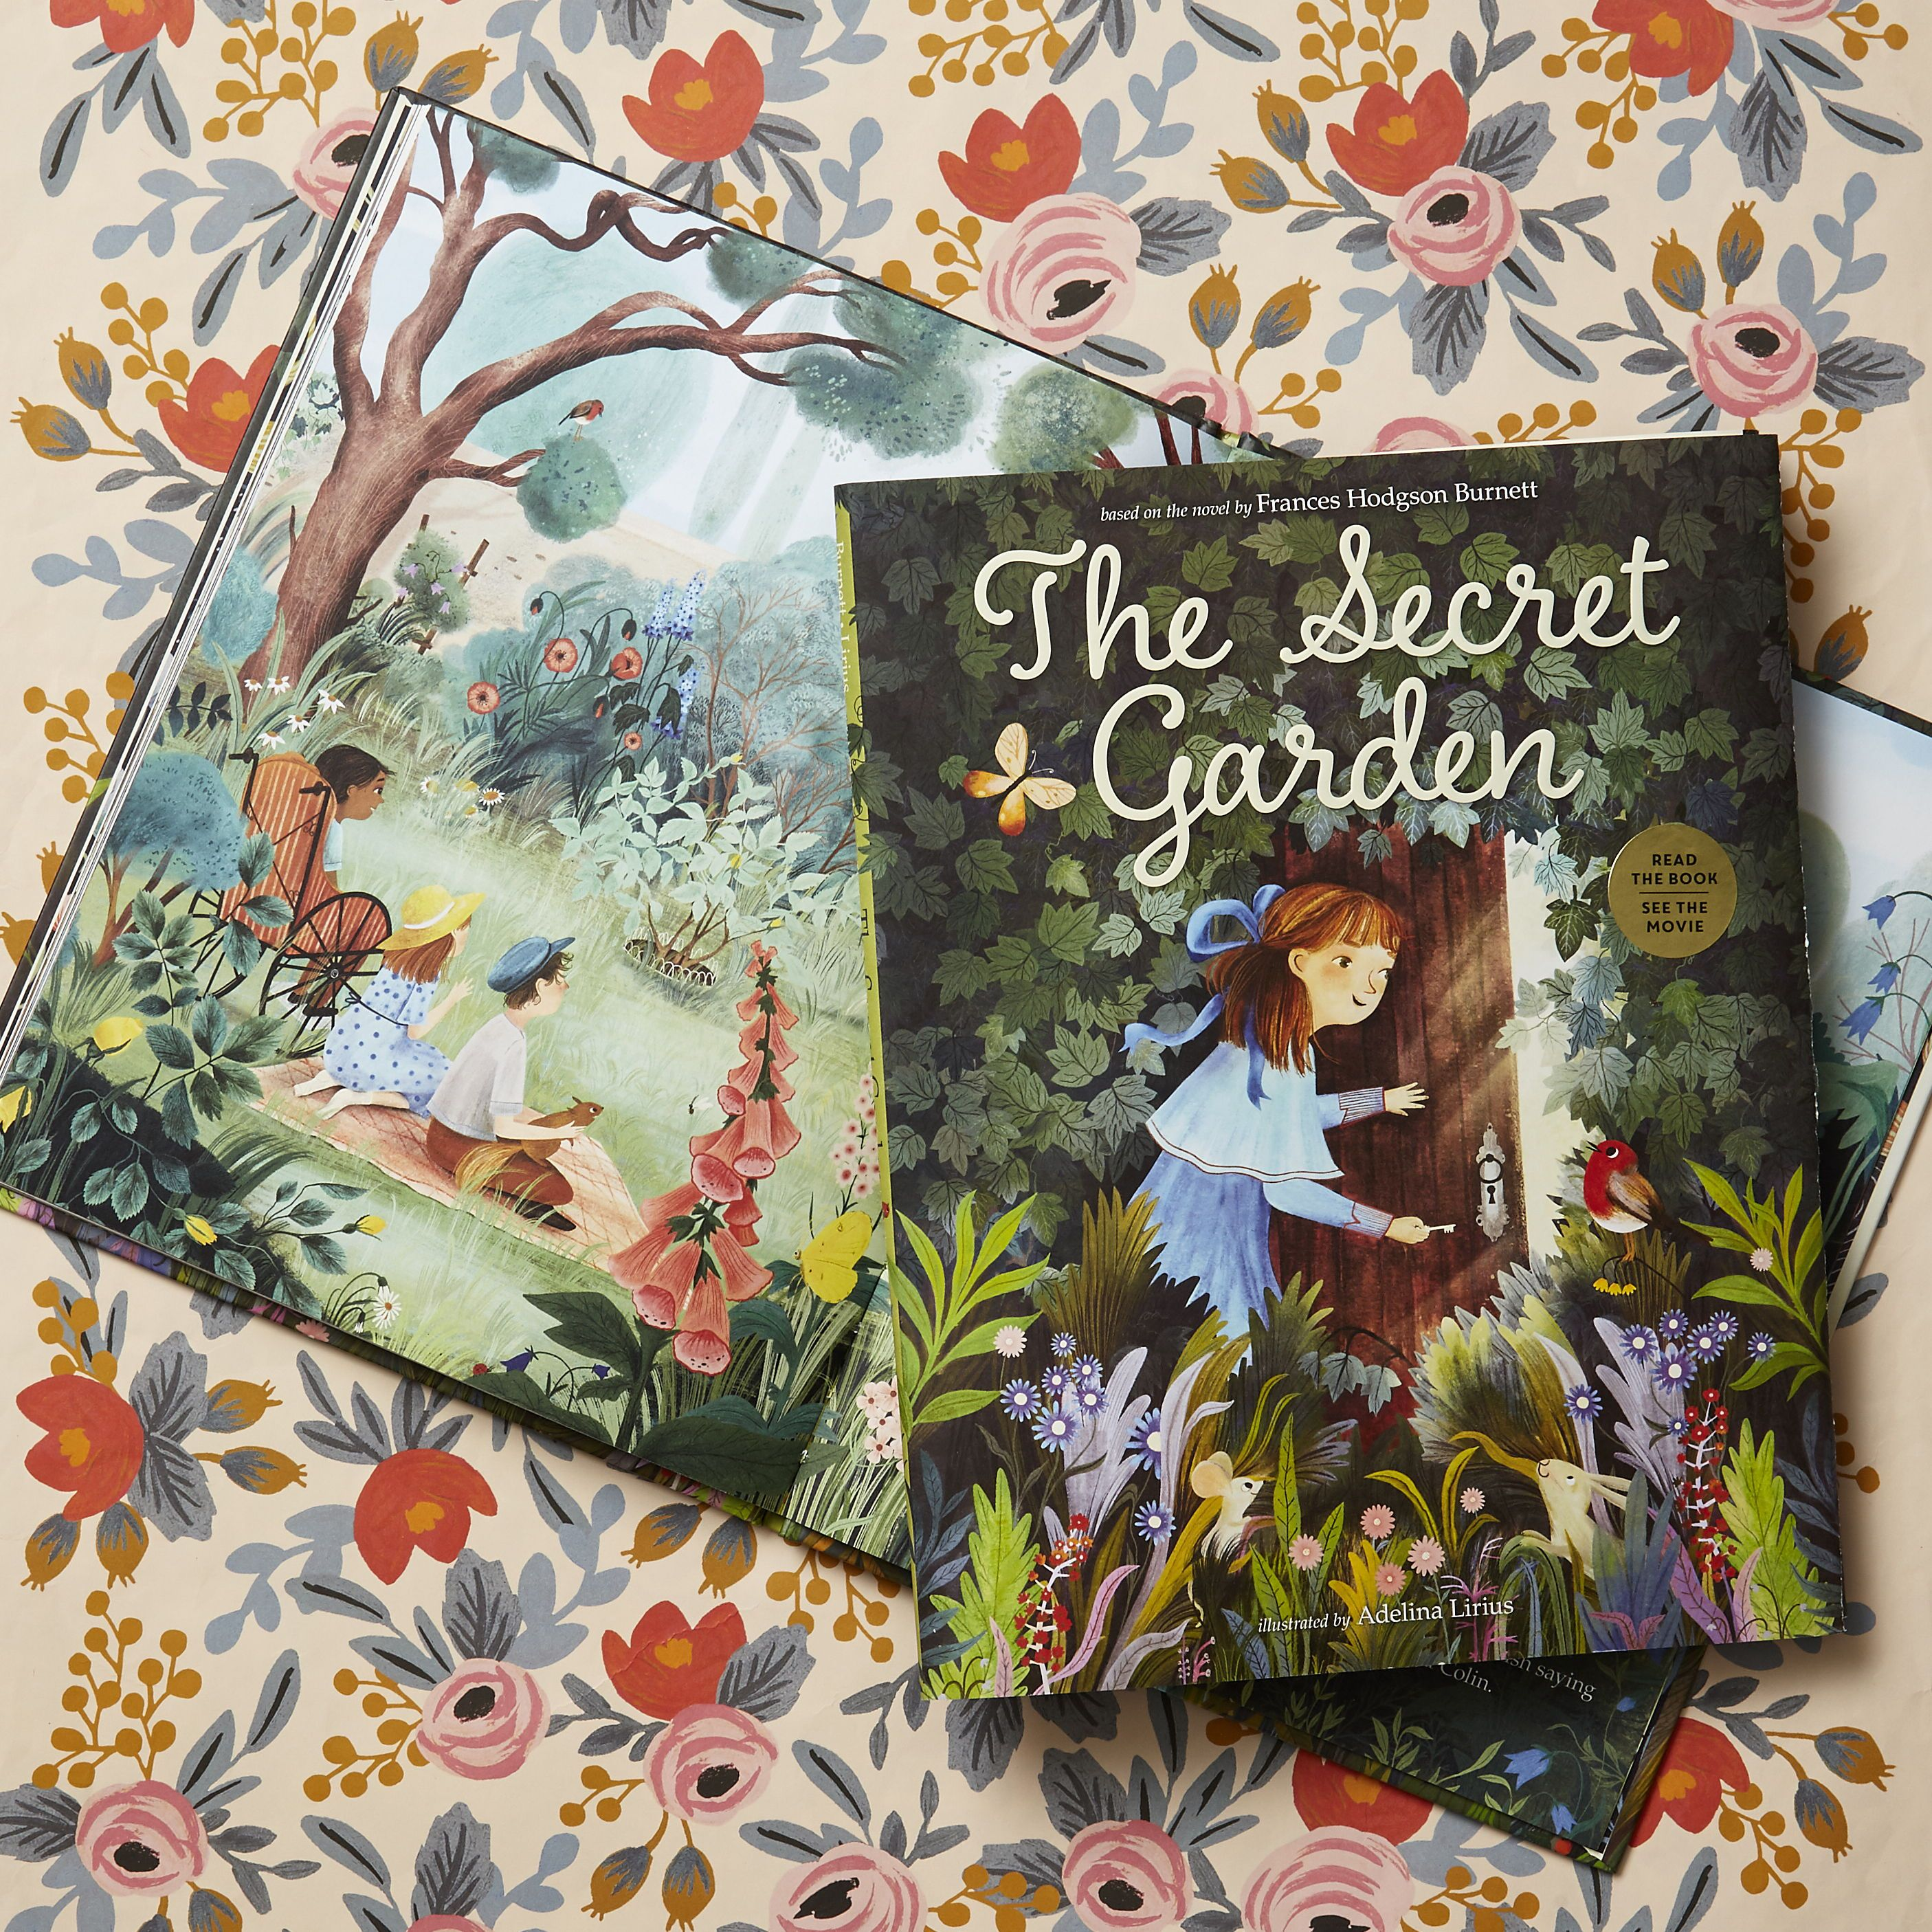 The Secret Garden in 2020 Picture book, Social themes